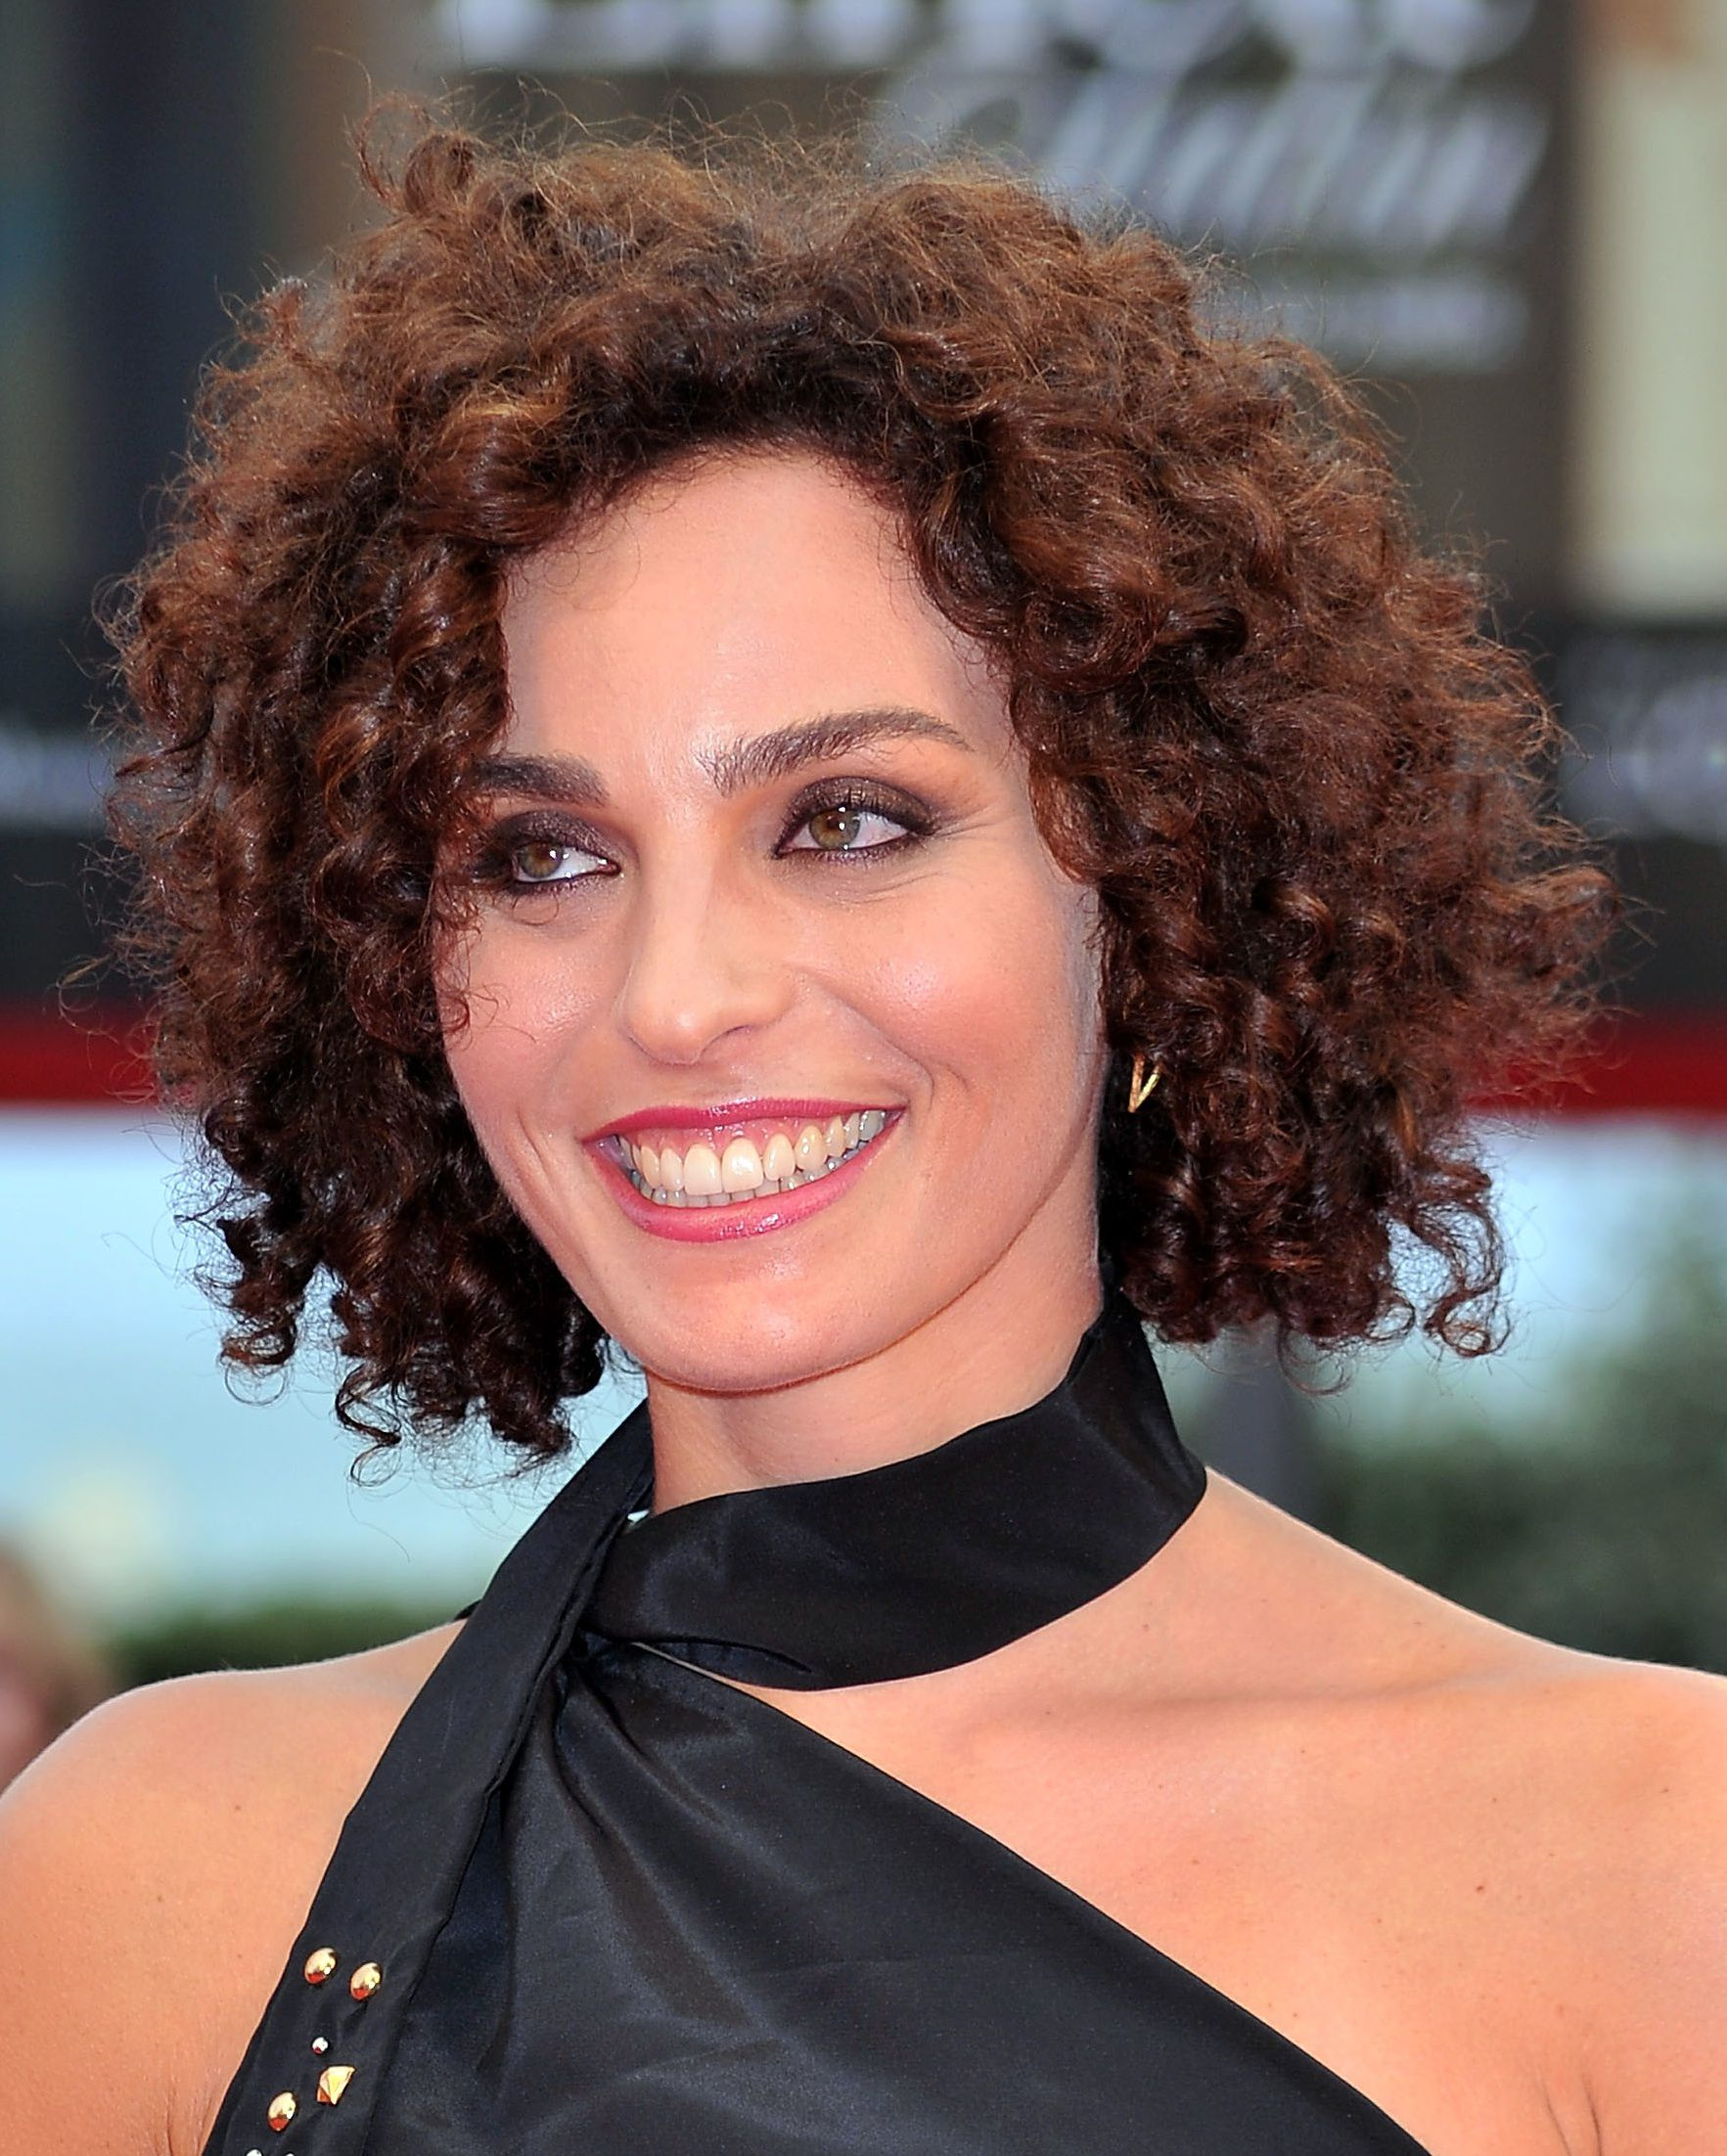 short, curly hairstyles that prove curly can go short